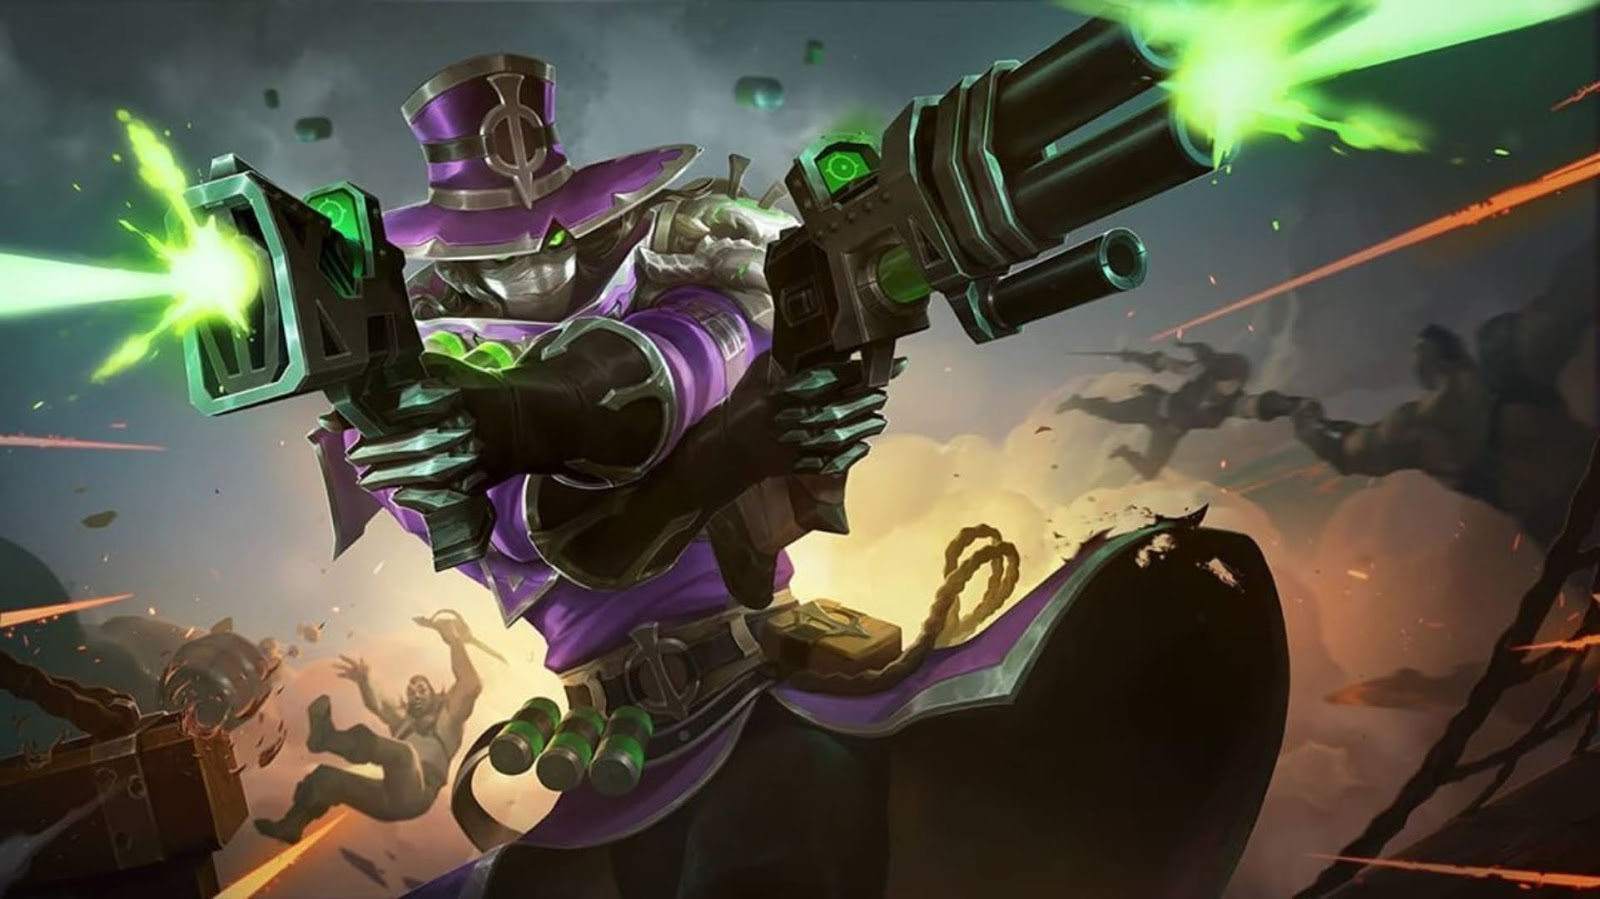 Wallpaper Clint Witch Hunter Skin Mobile Legends HD for PC